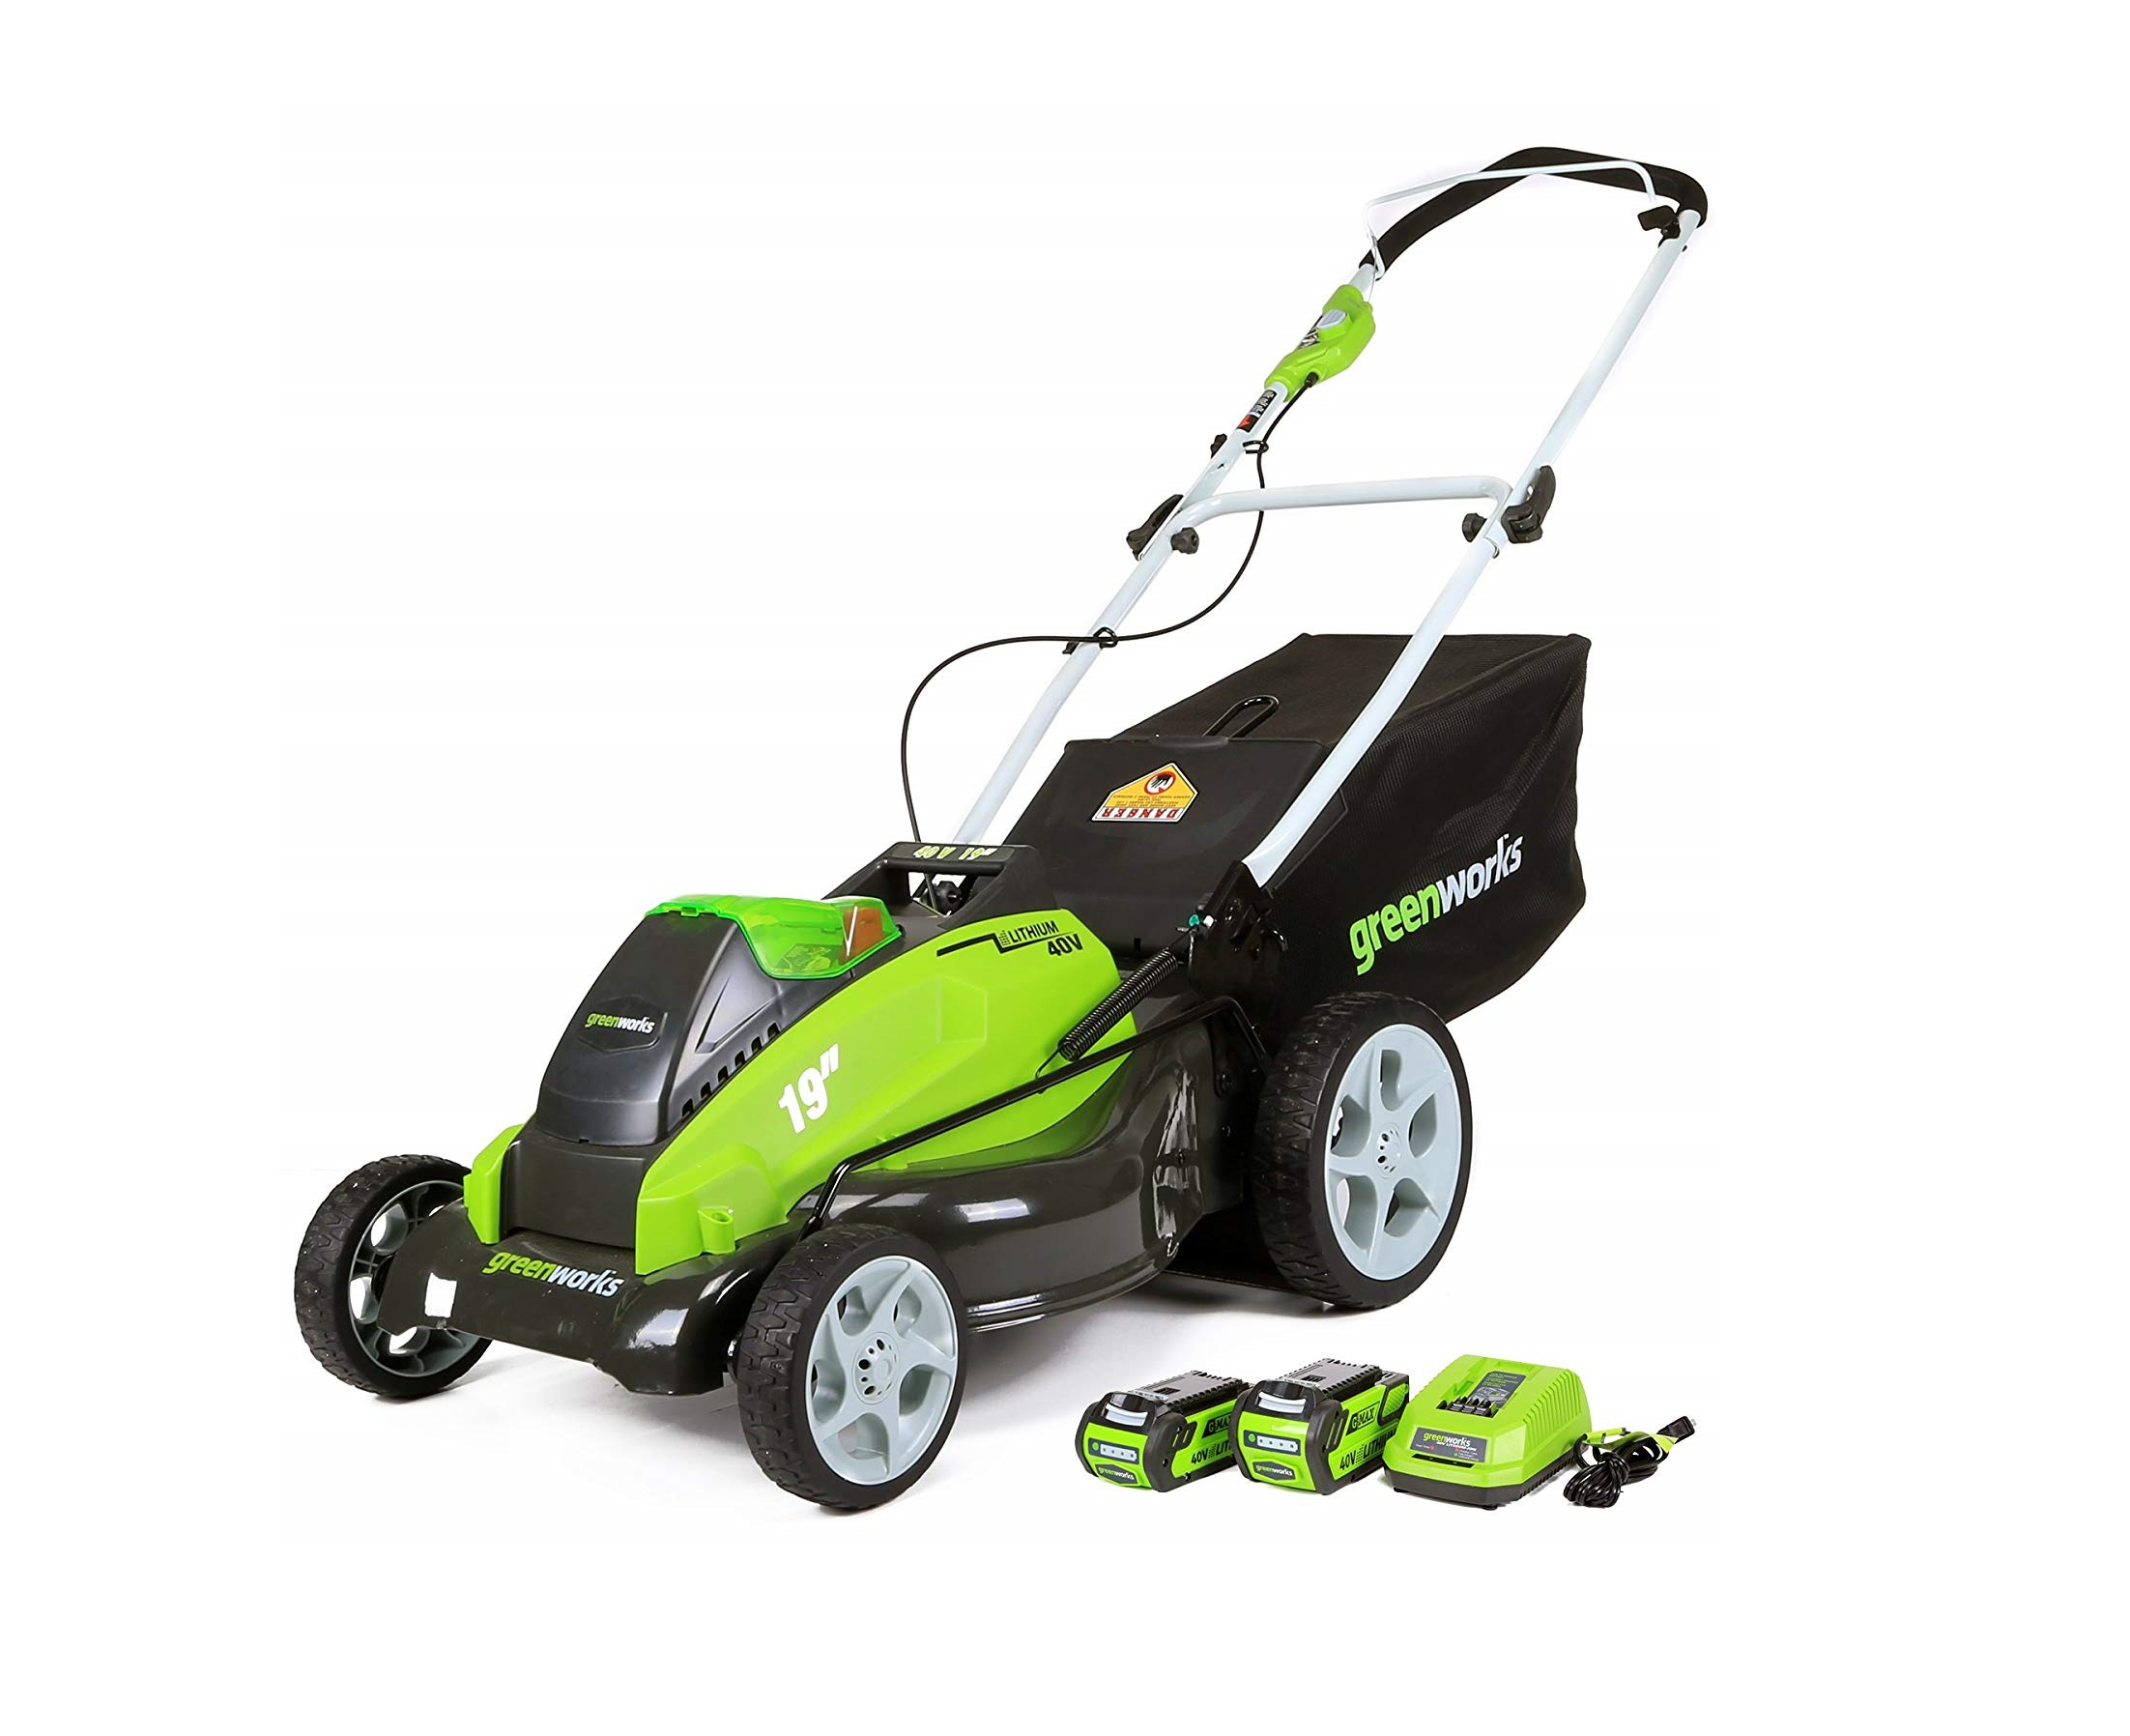 Top 5 best Cordless Lawn Mower in 2019 reviews